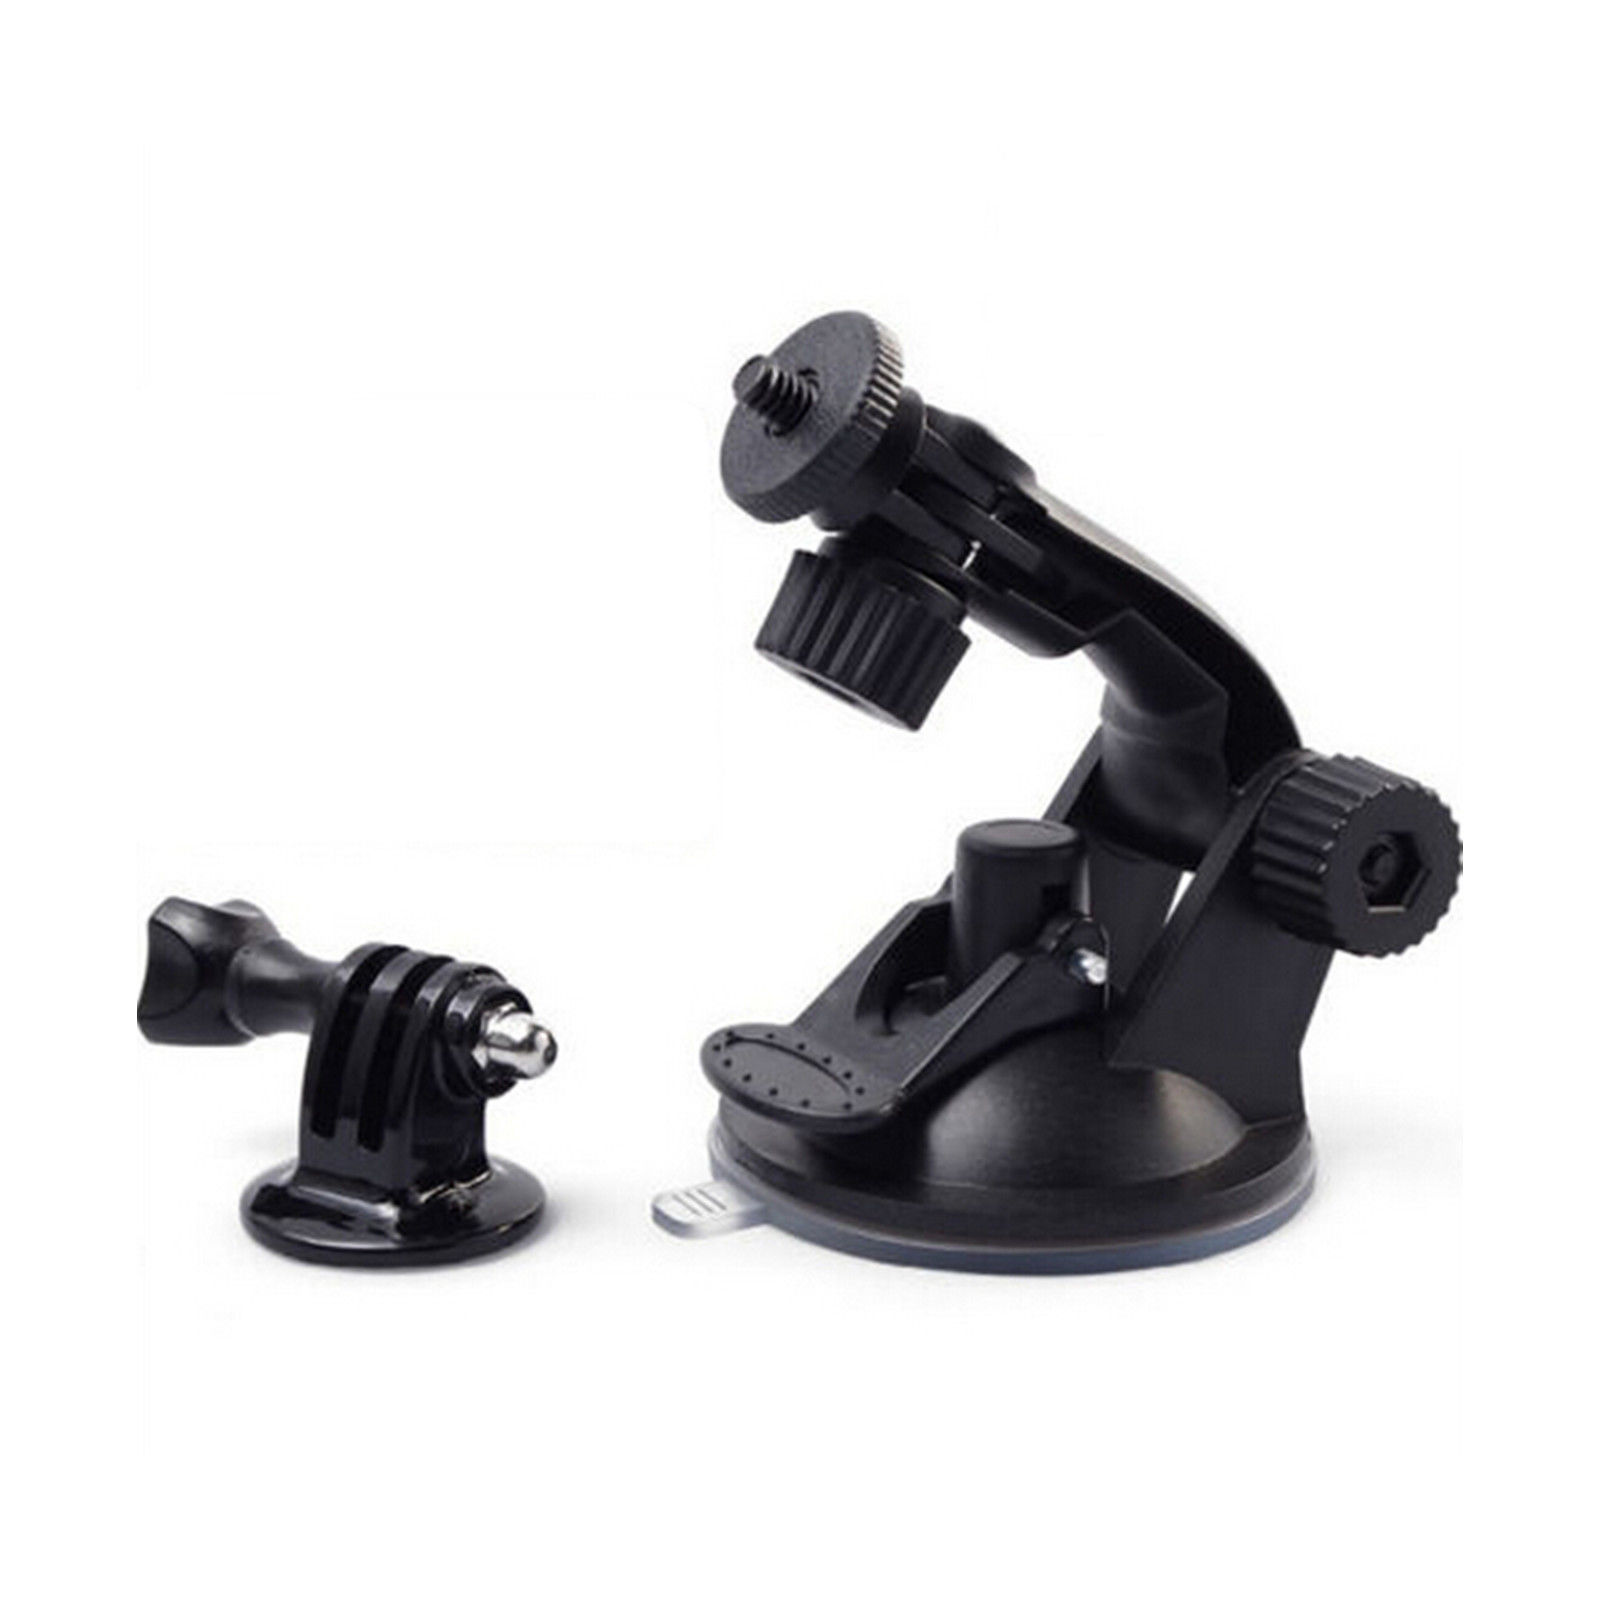 $5 69 - Suction Cup Windshield/Dash Car Rotate Mount For